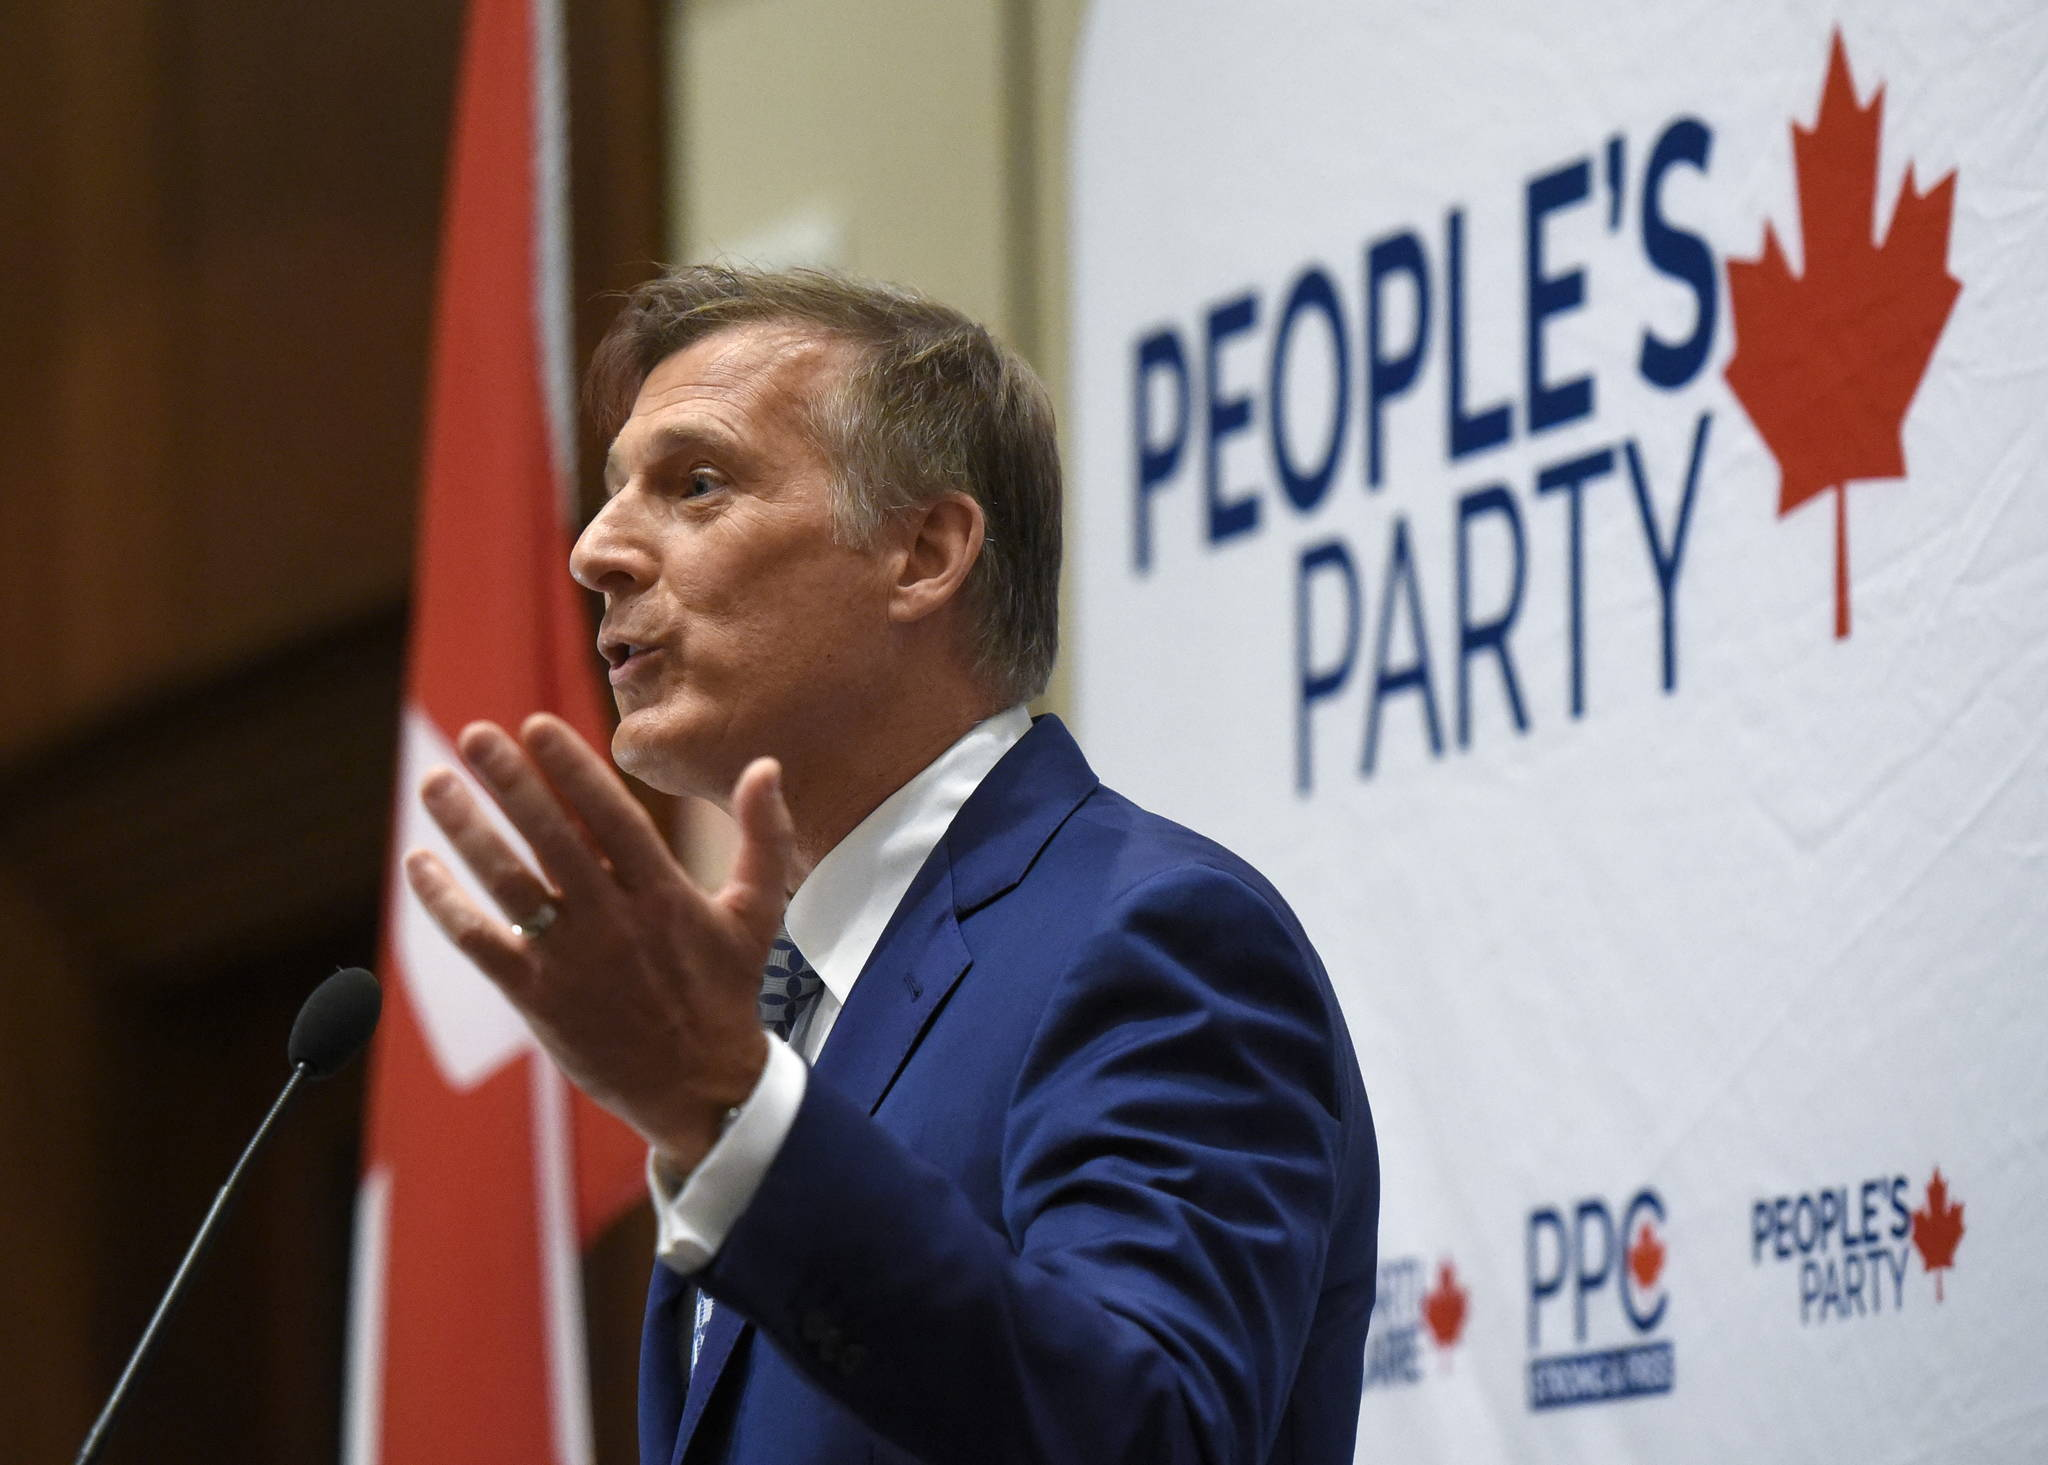 People's Party of Canada leader Maxime Bernier delivers an address at the PPC National Conference in Gatineau, Que. on Sunday, Aug. 18, 2019. THE CANADIAN PRESS/Justin Tang